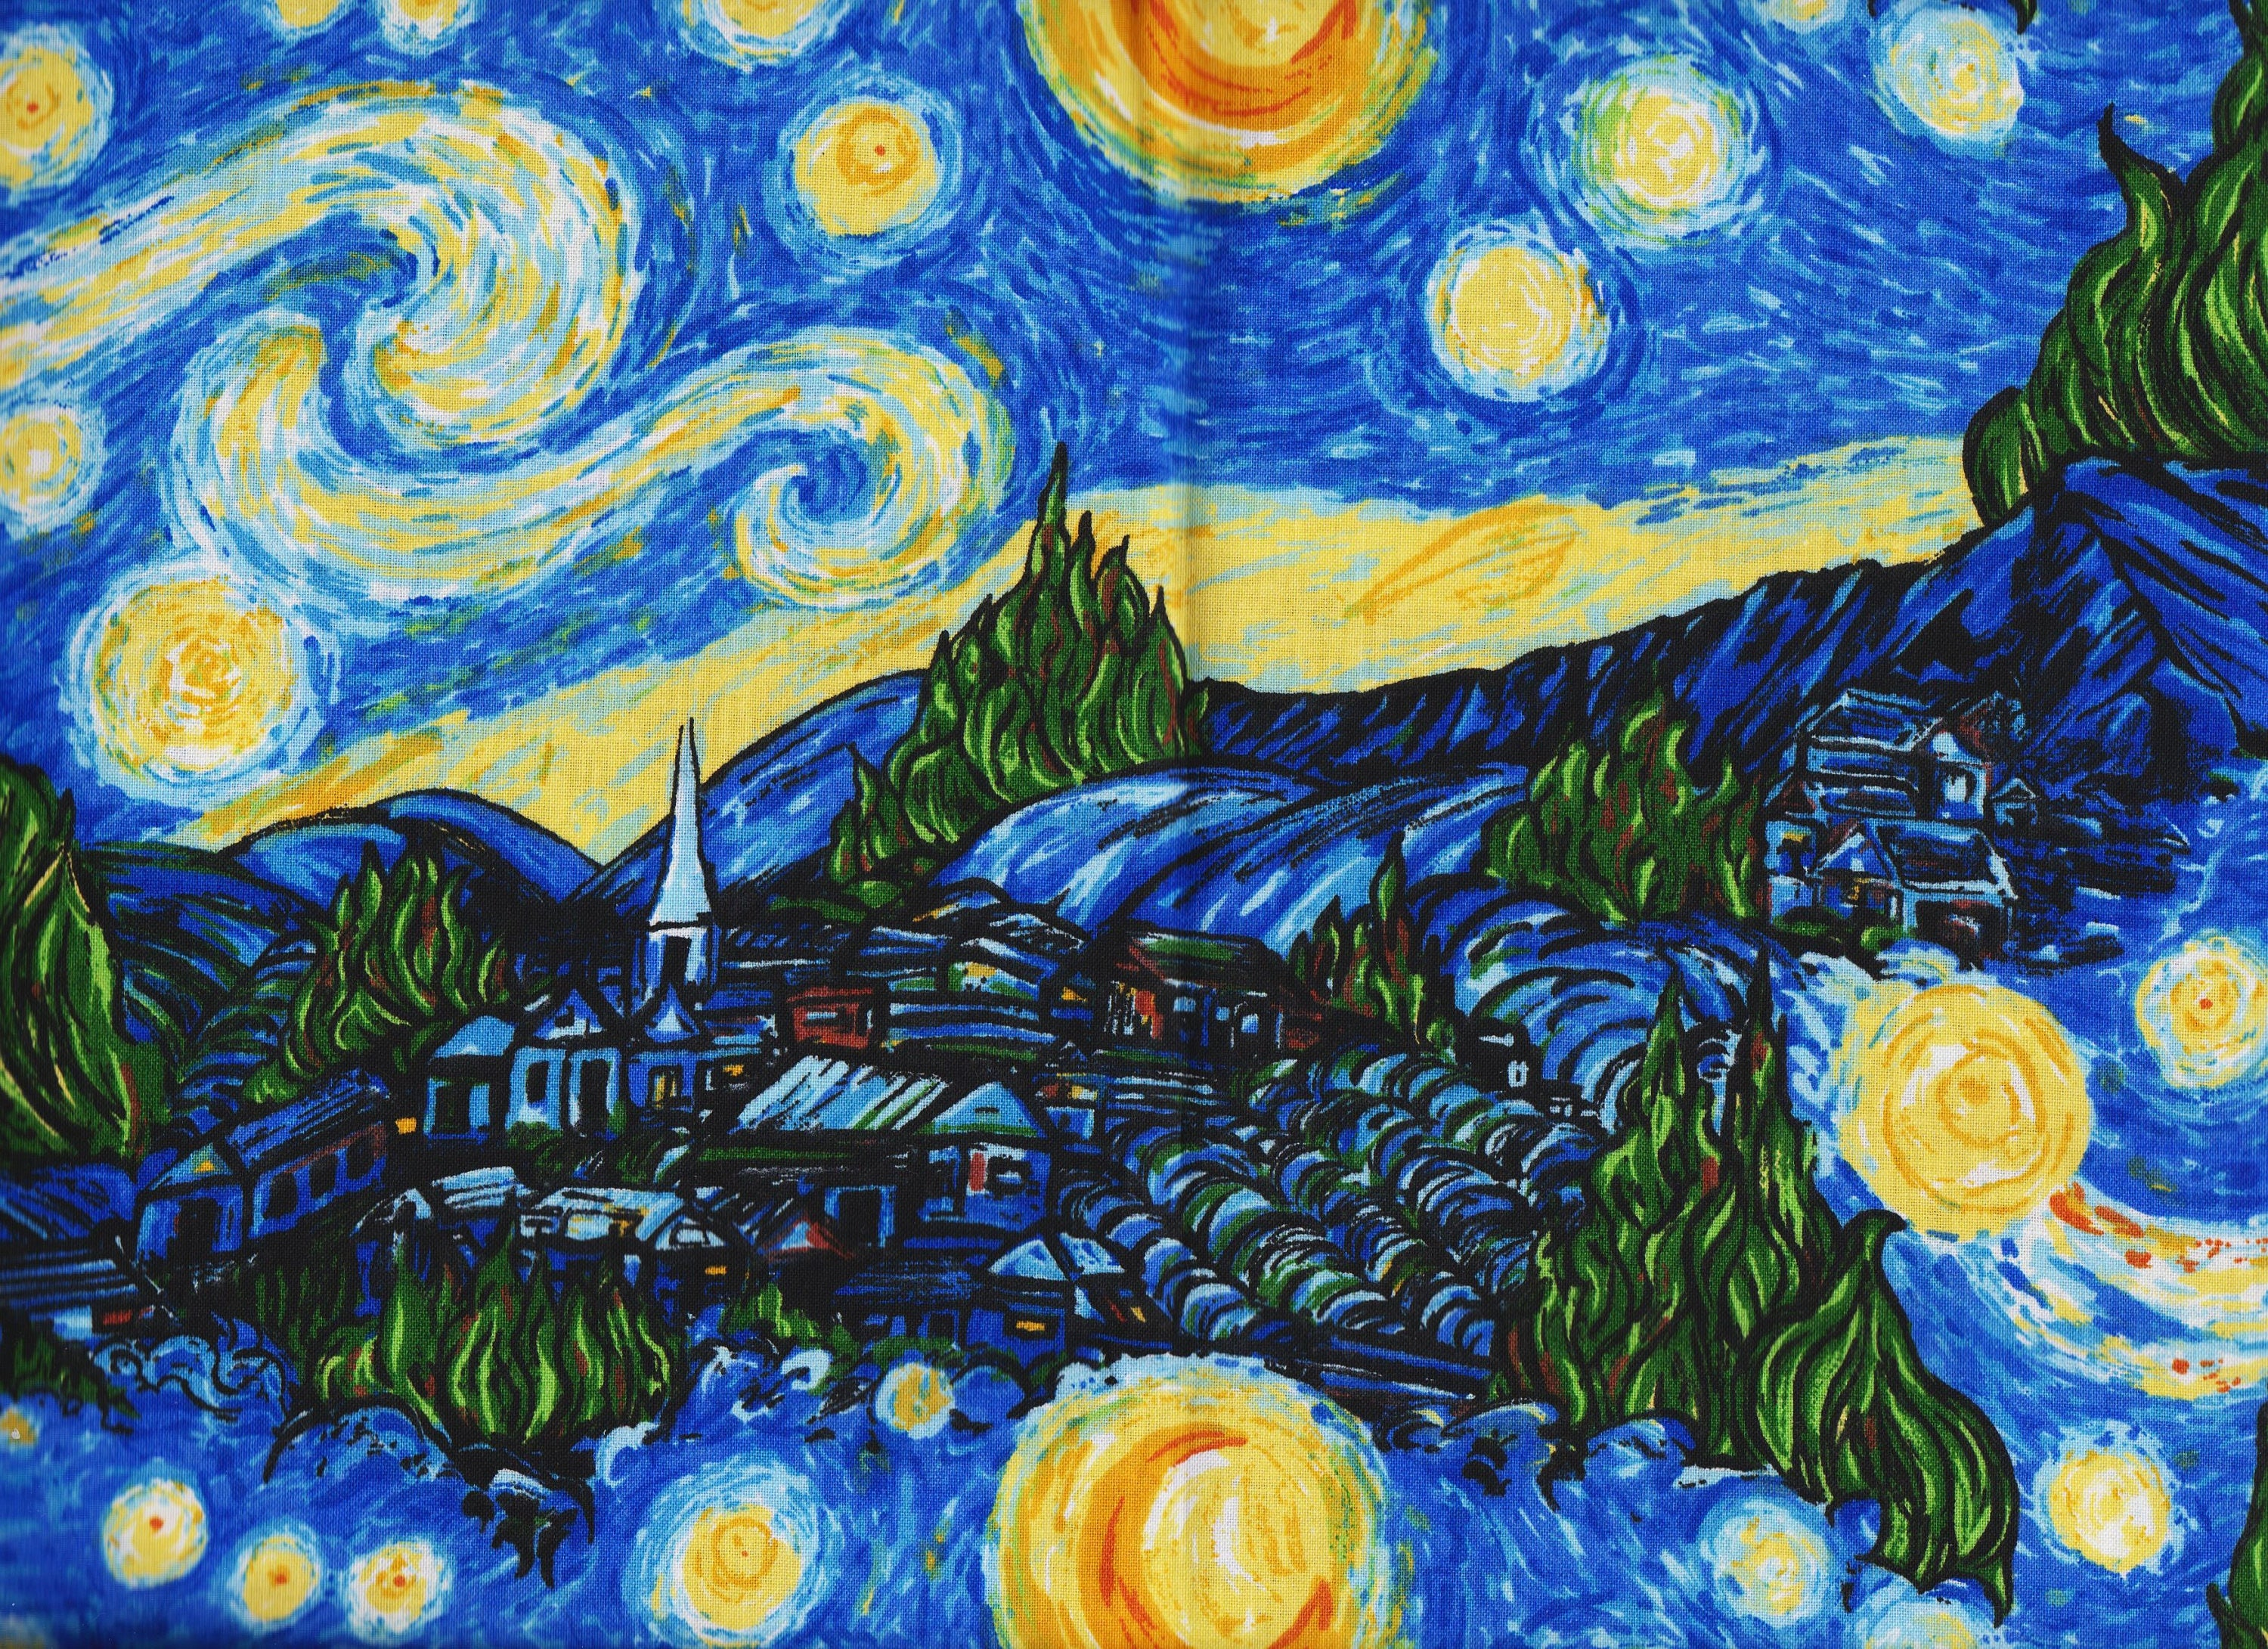 Bty Starry Night Print Inspired By Vincent Van Gogh Artwork